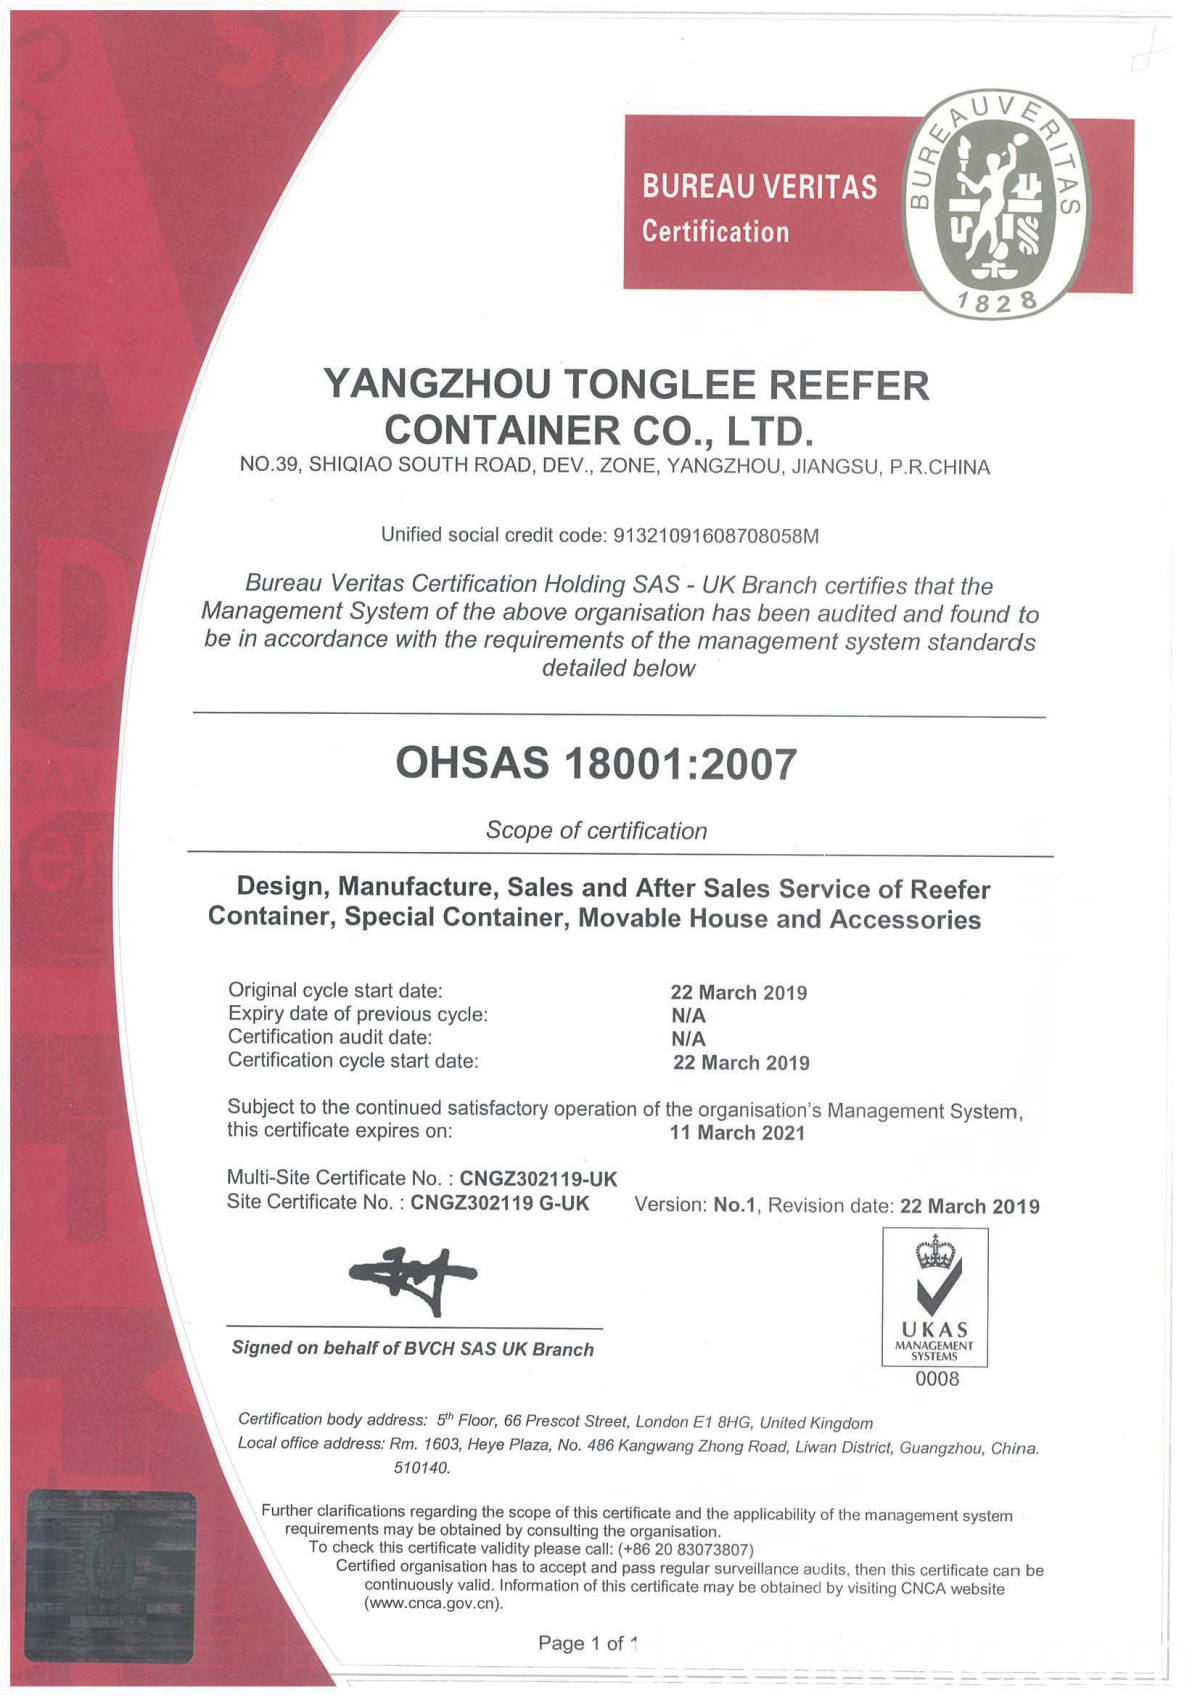 OSHAS 18001 certification for Data Center Container Integrated Type